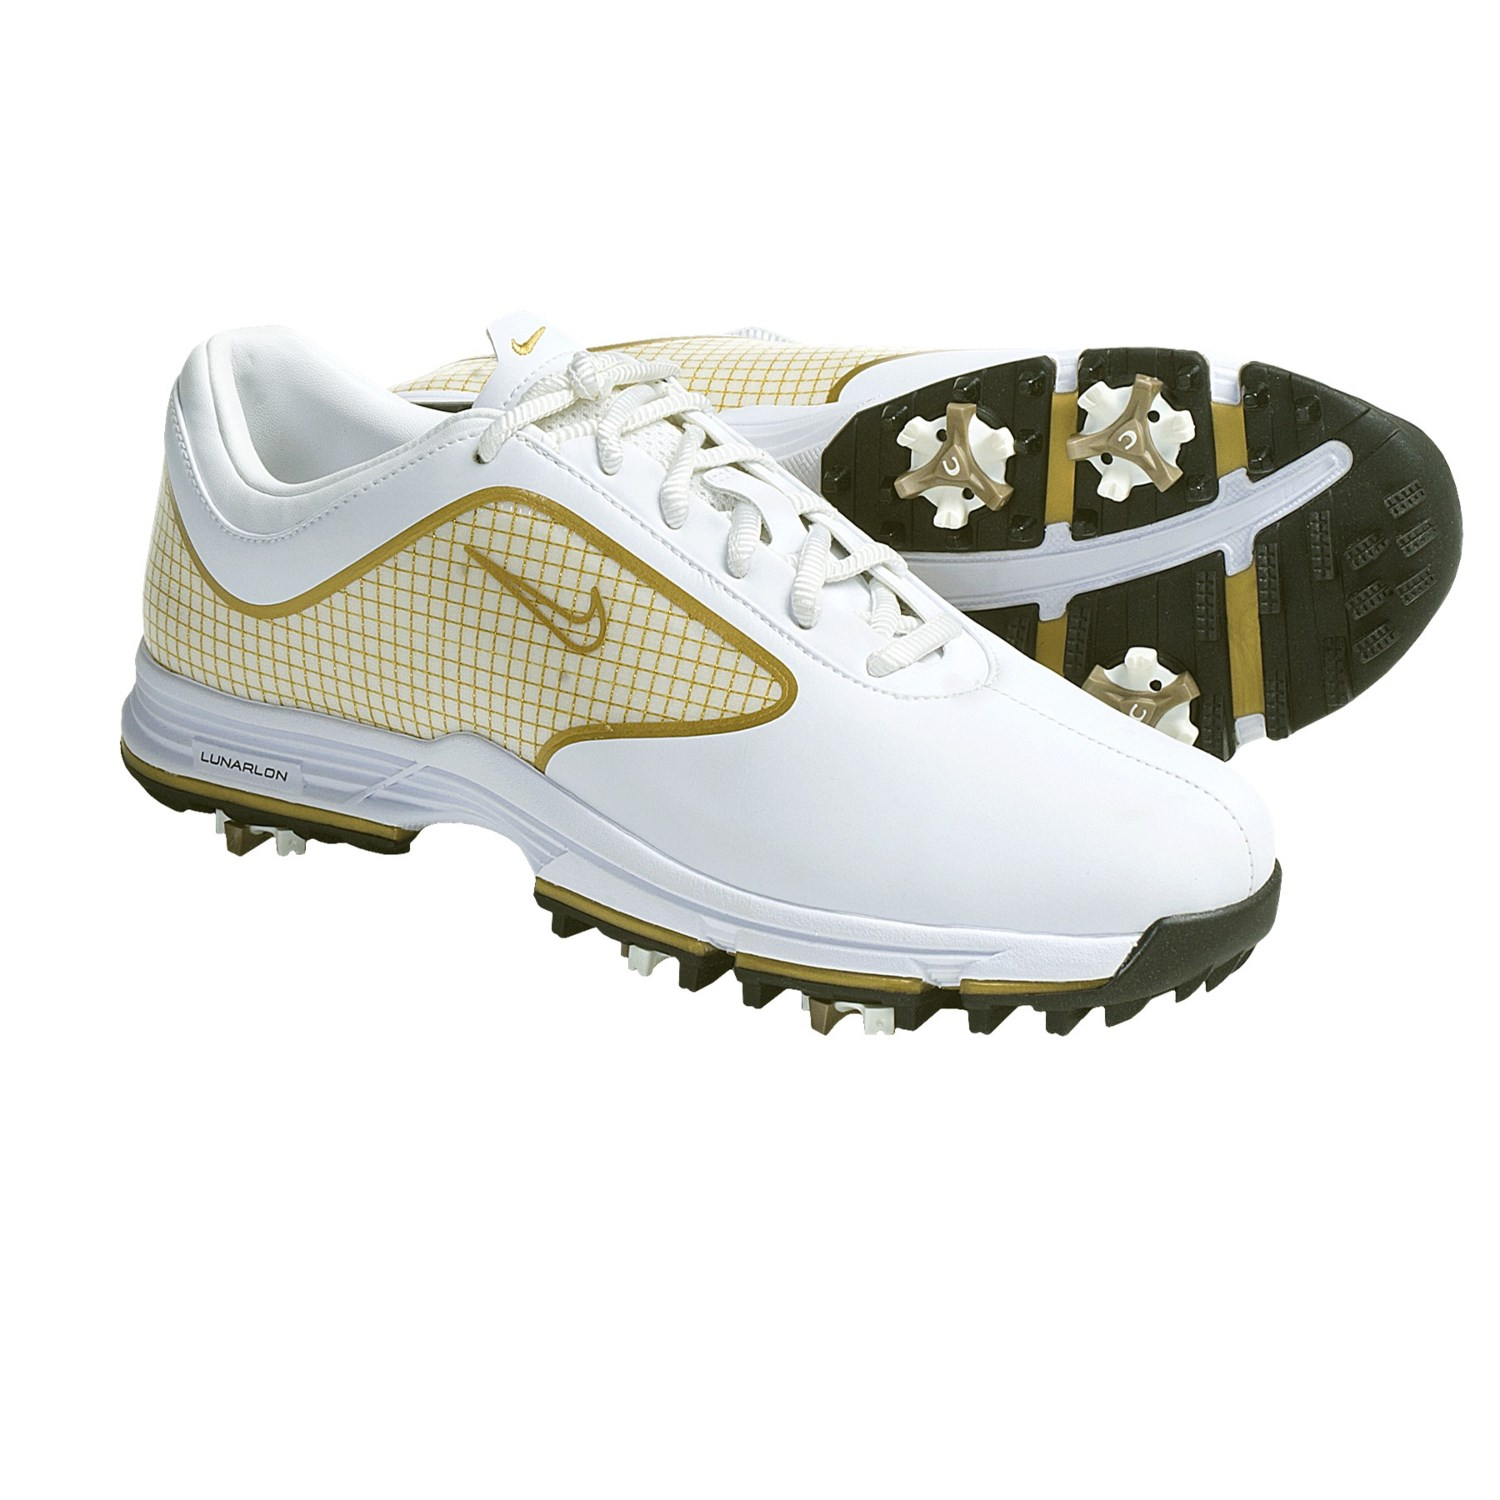 Perfect Building On The Success Of The Mens Nike Lunar Control Franchise, Nike Golf Introduces The Womens Nike Lunar Control Not Only Is This The First Womens Shoe In The Lunarlon Collection But Also The First Womens Golf Shoe